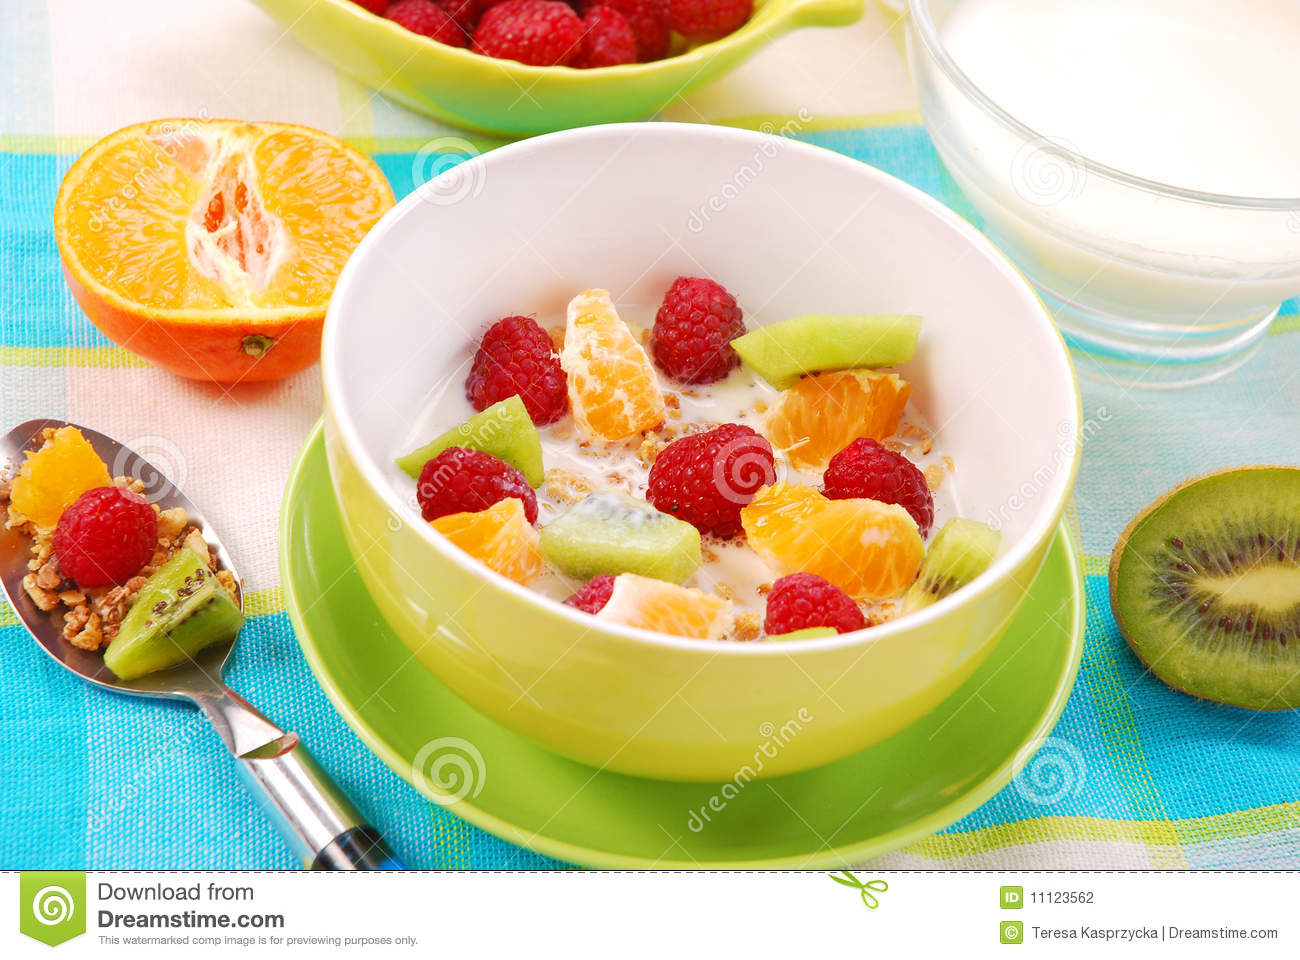 Download Muesli With Fresh Fruits As Diet Food Stock Photo - Image of meal, drink: 11123562